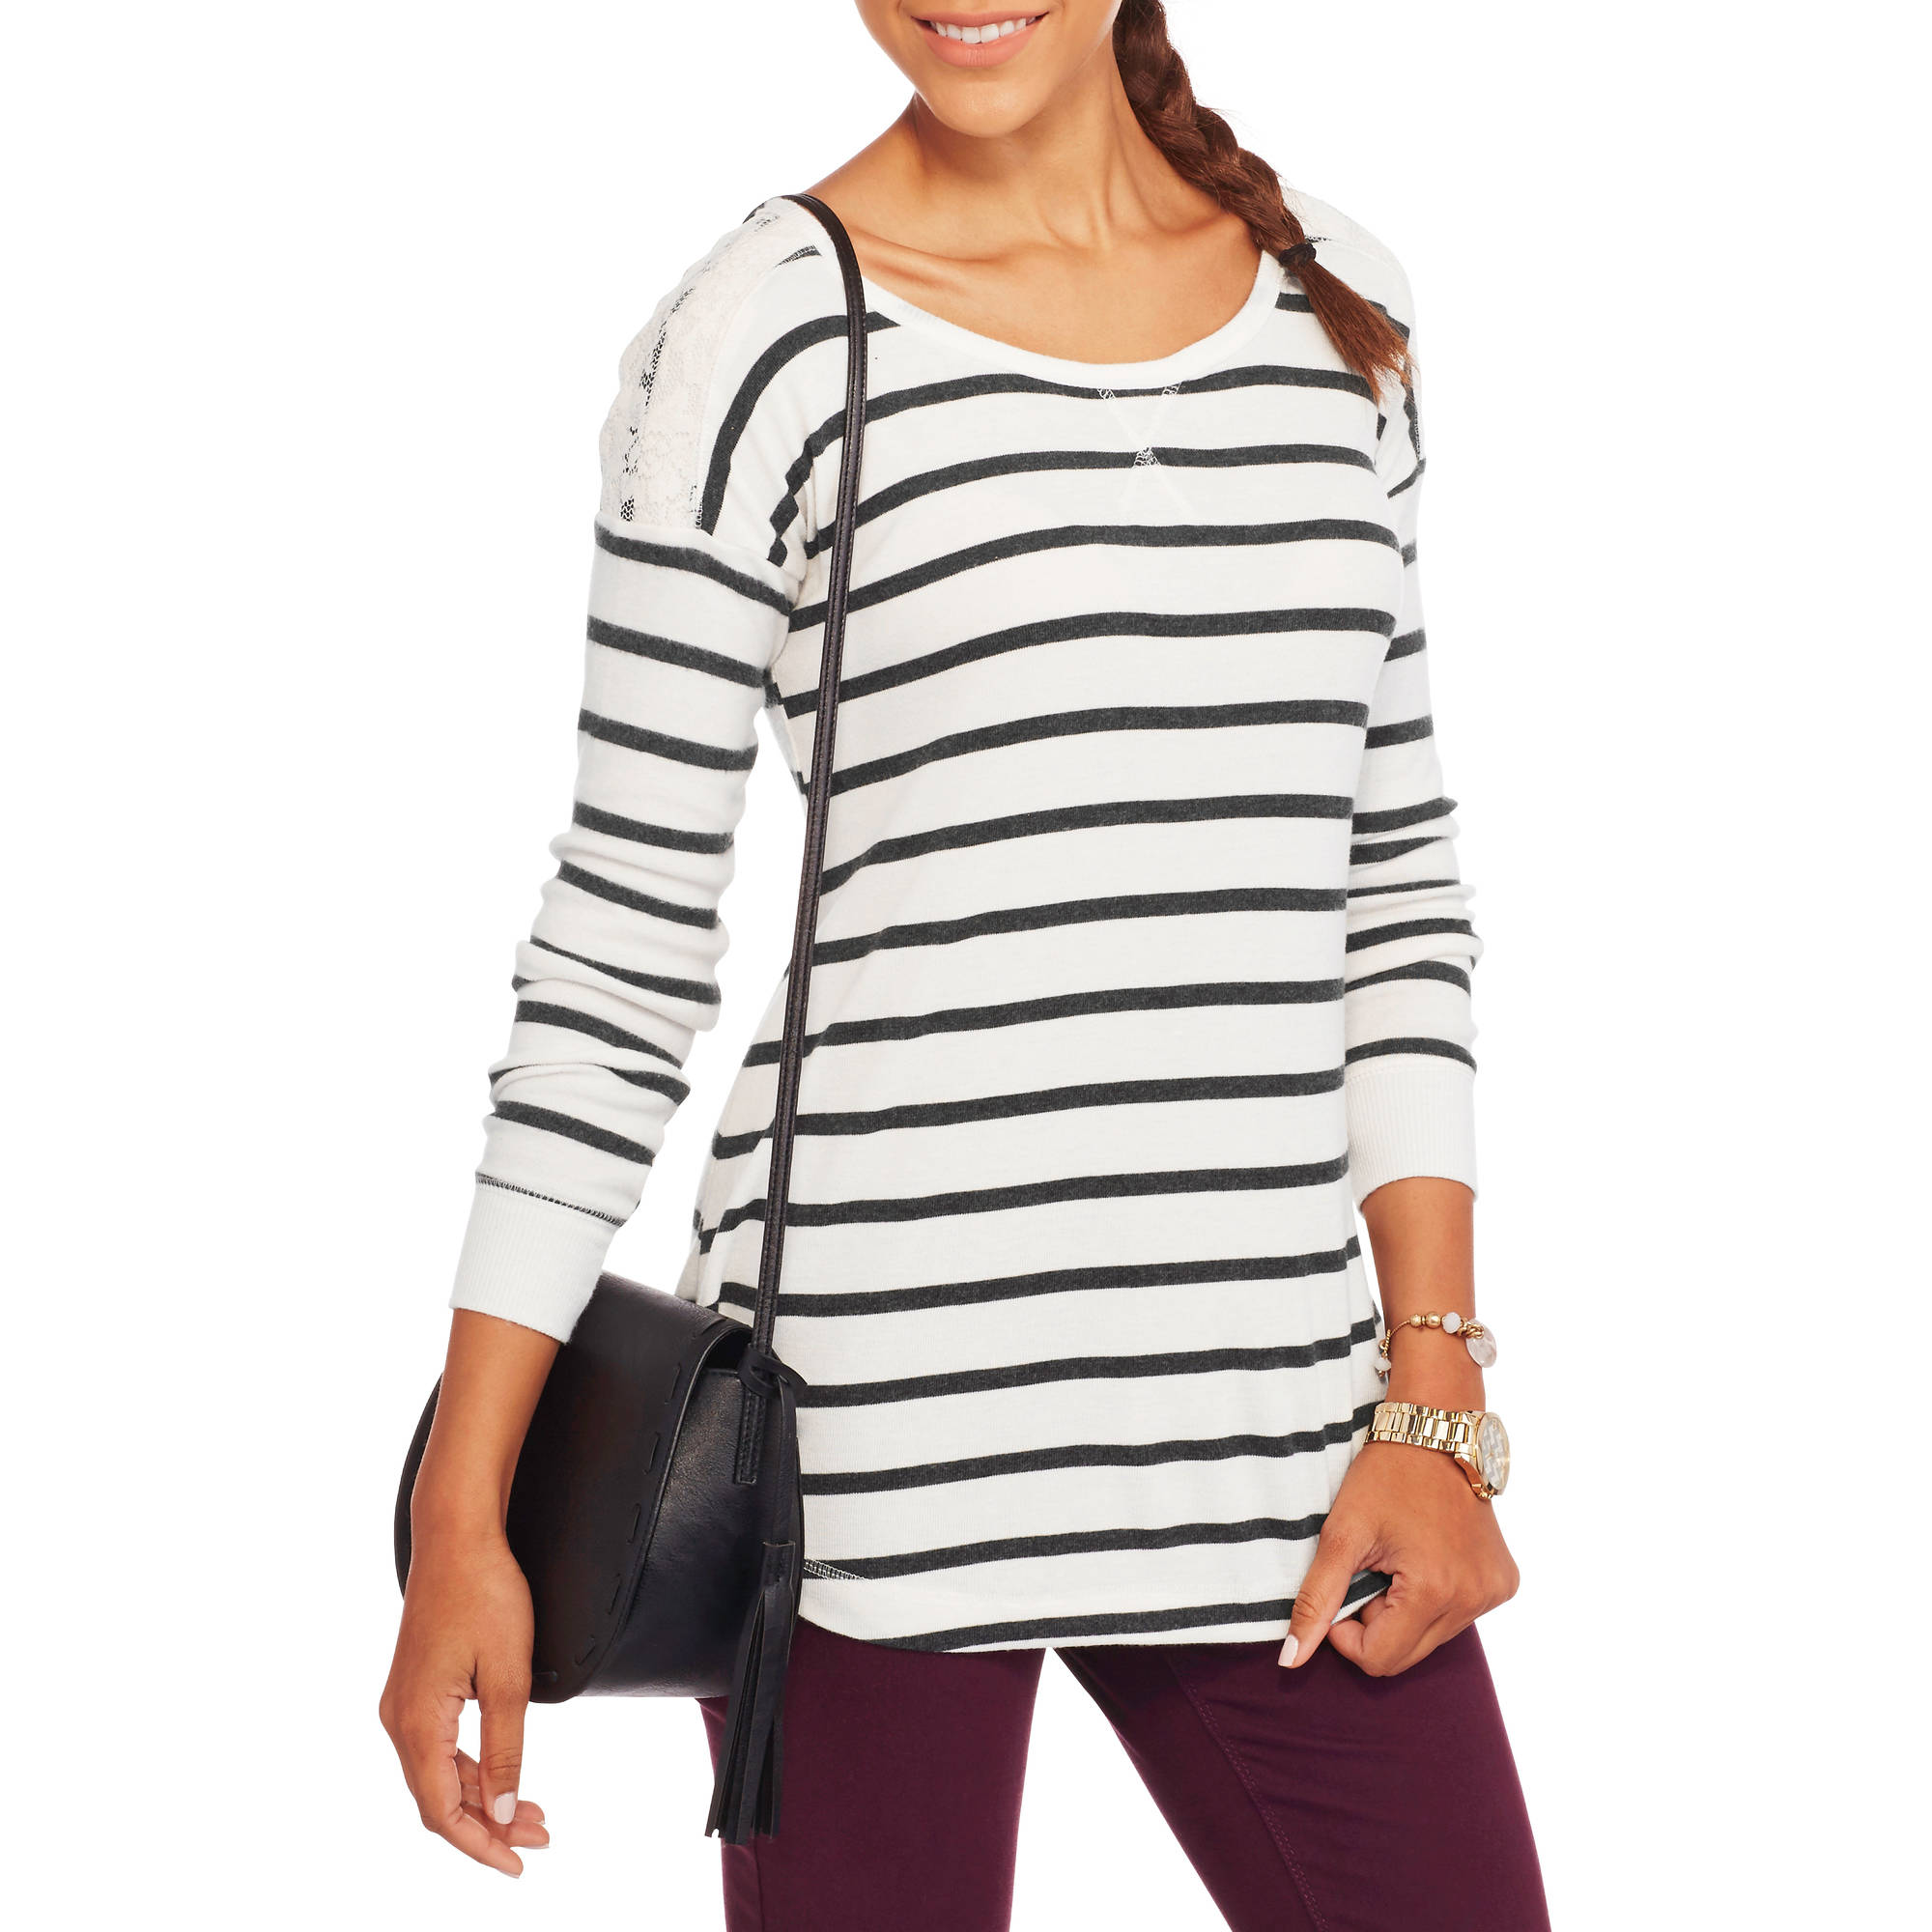 French Laundry Women's Ribbed Tunic with Lace Trim